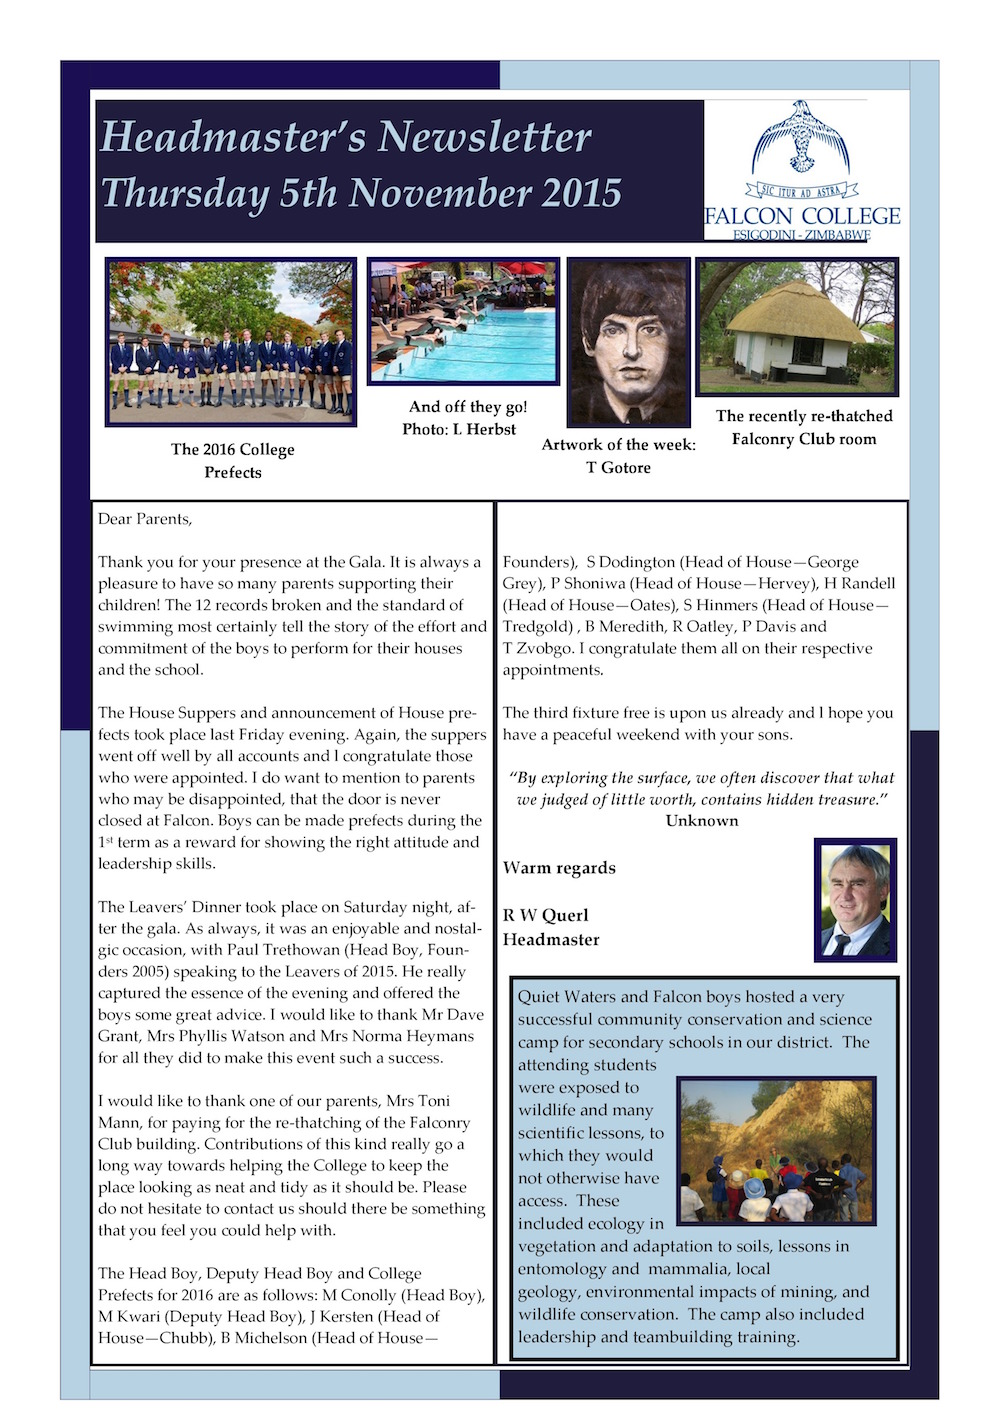 Headmaster's Newsletter Thursday 5th November 2015 edited -page-0